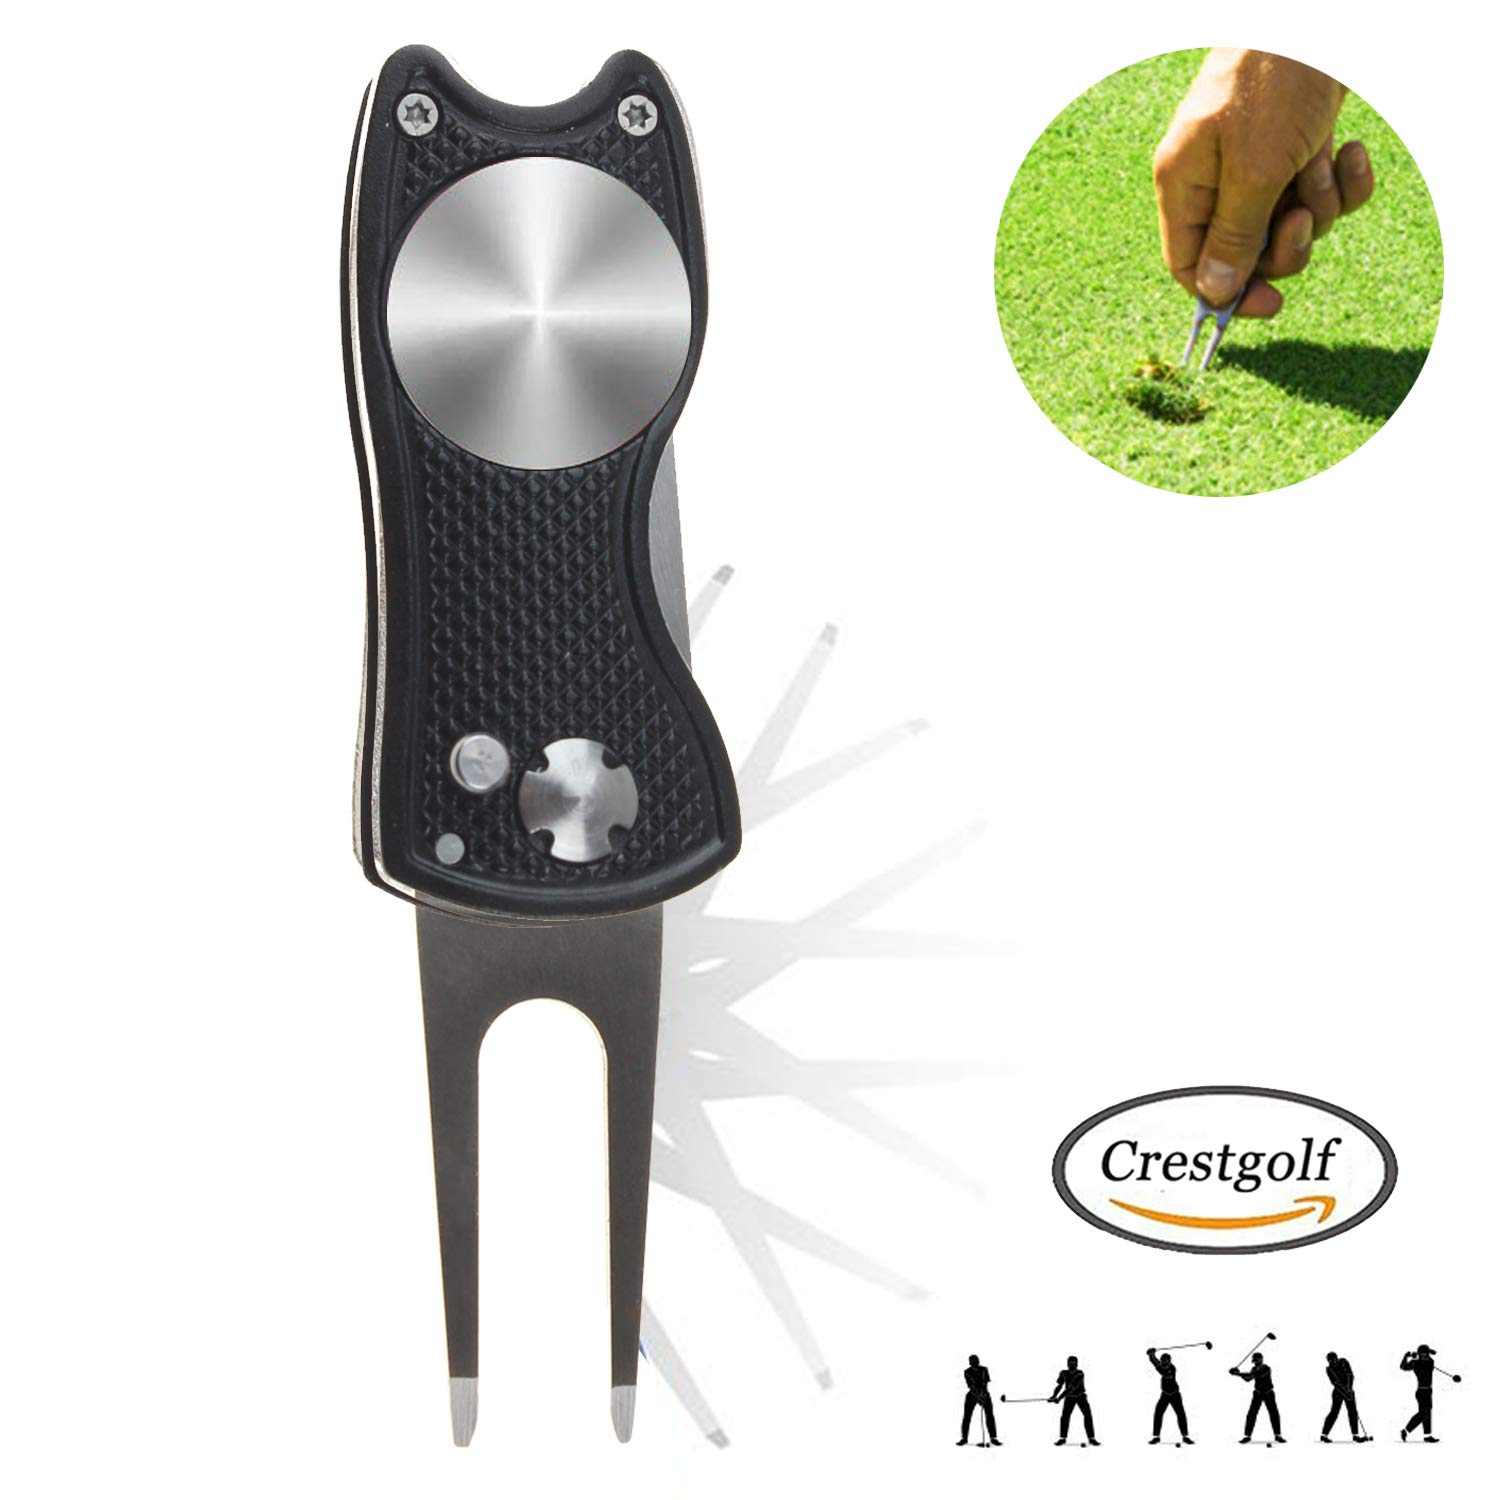 Crestgolf Switchblade Golf Divot Tool Golf Green Reparación Pitch Fork